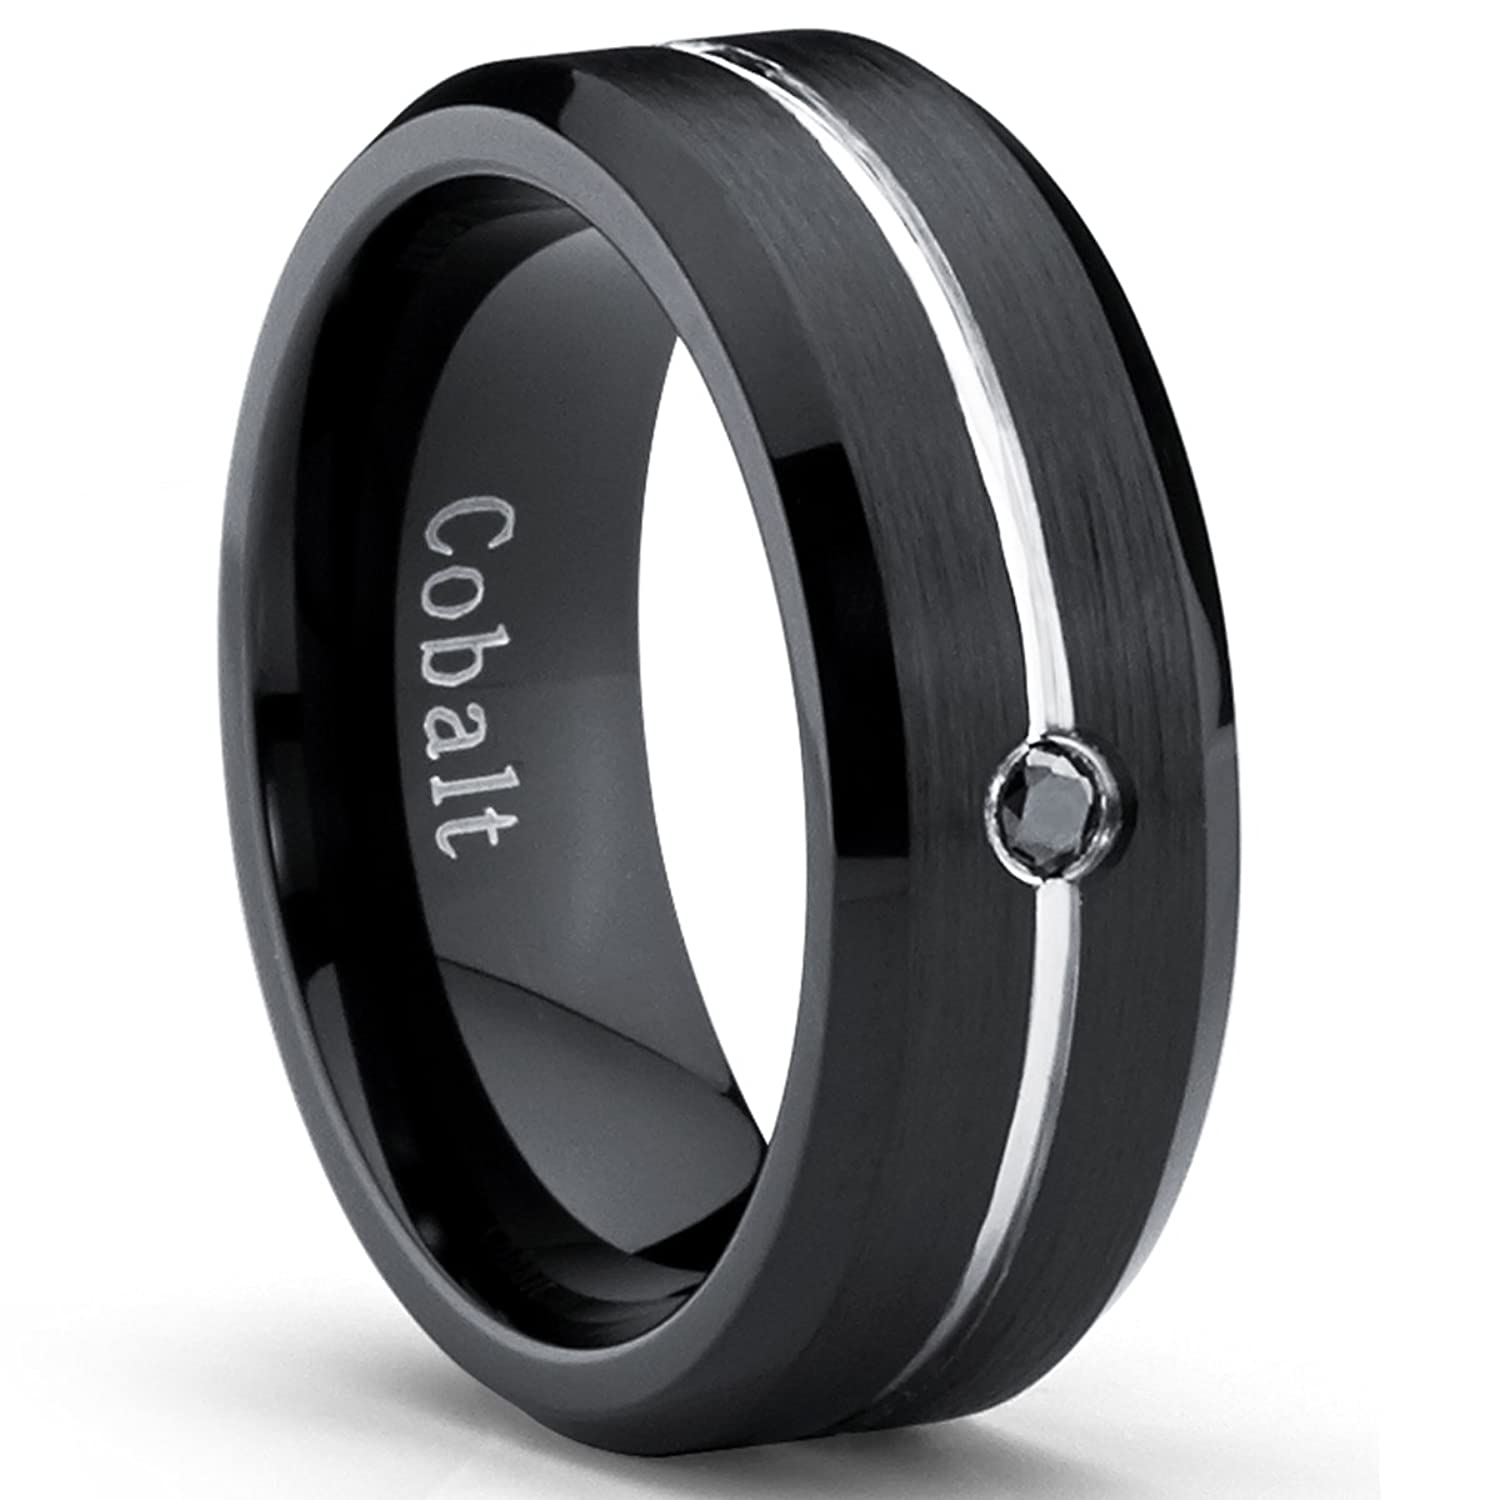 b p in buy stainless for india at online ring sorella bands mens prices z steel black men best rings